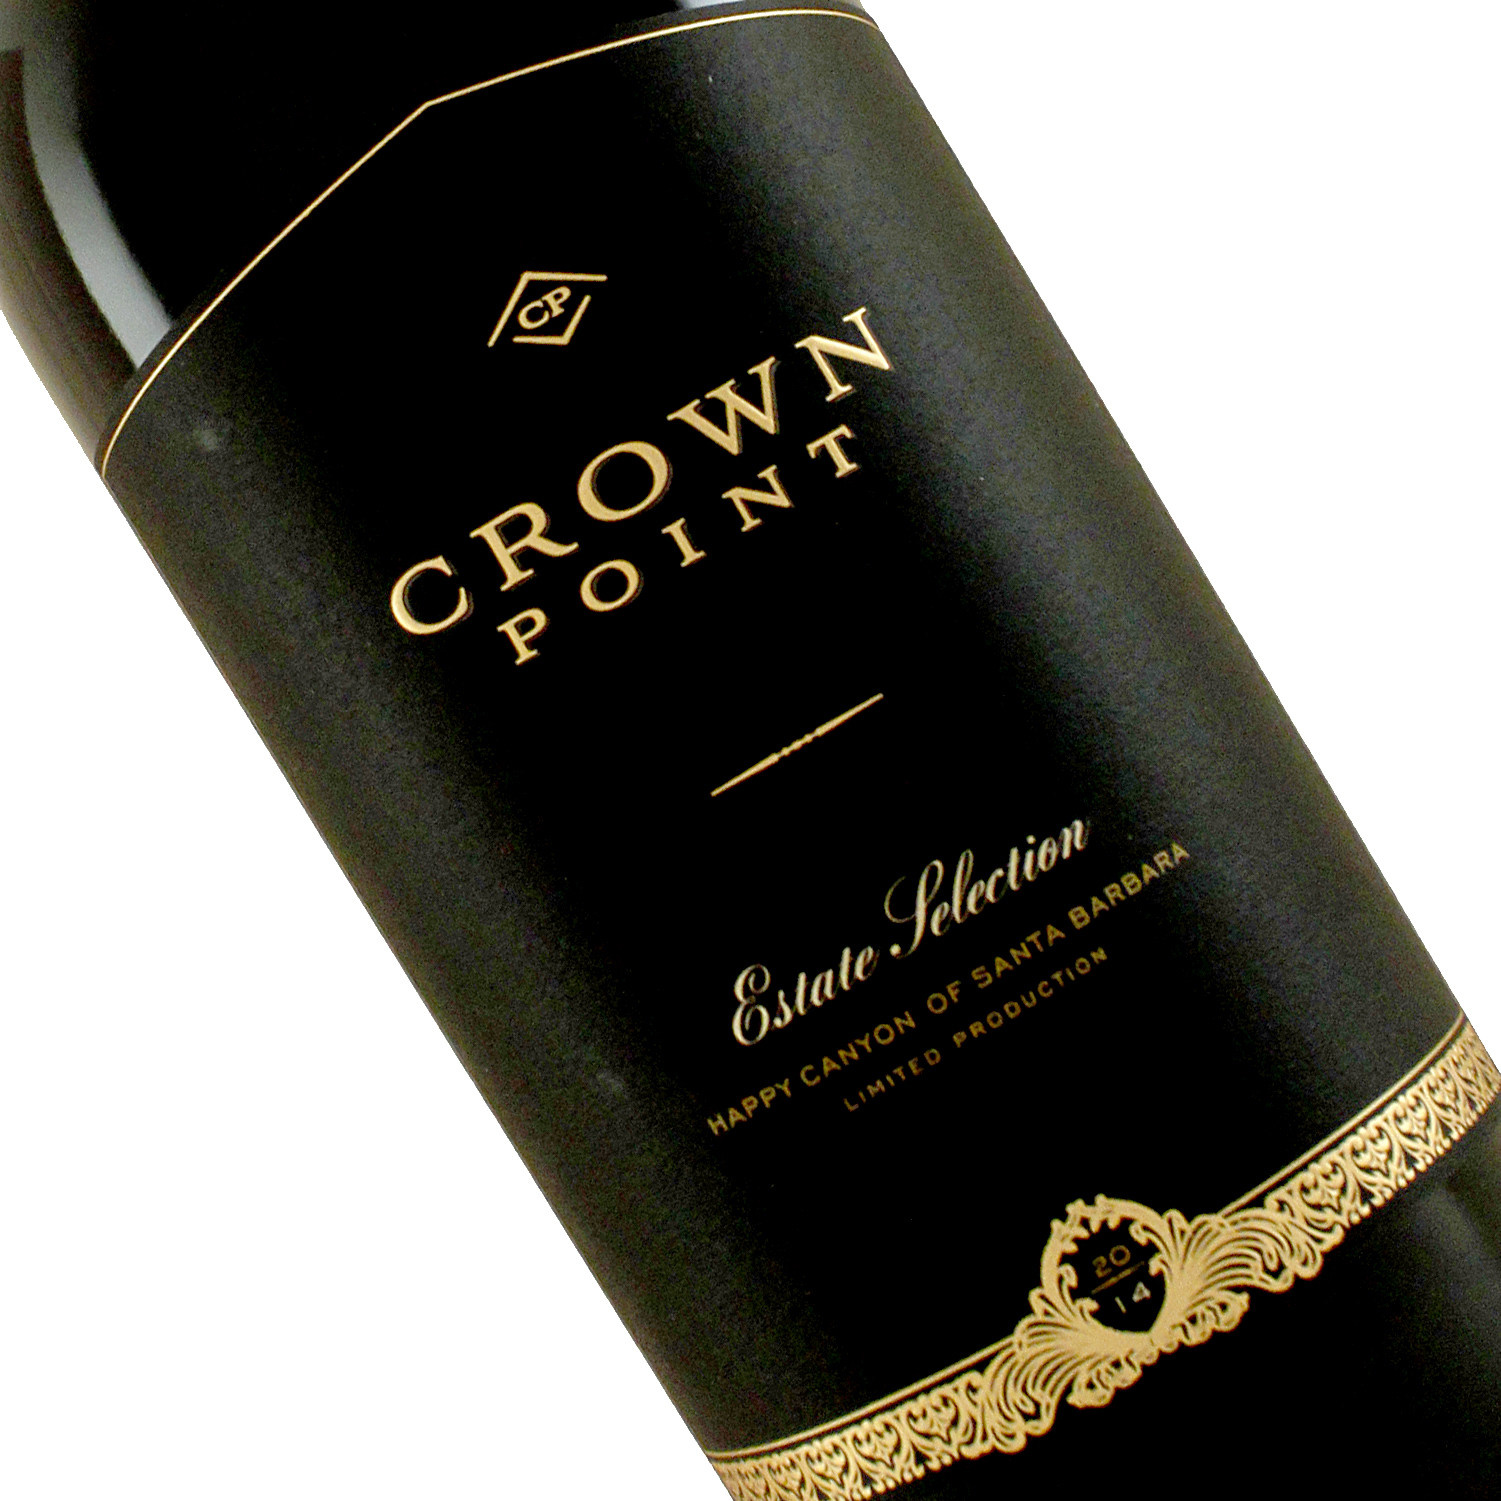 Crown Point 2014 Estate Selection Red Blend, Happy Canyon of Santa Barbara